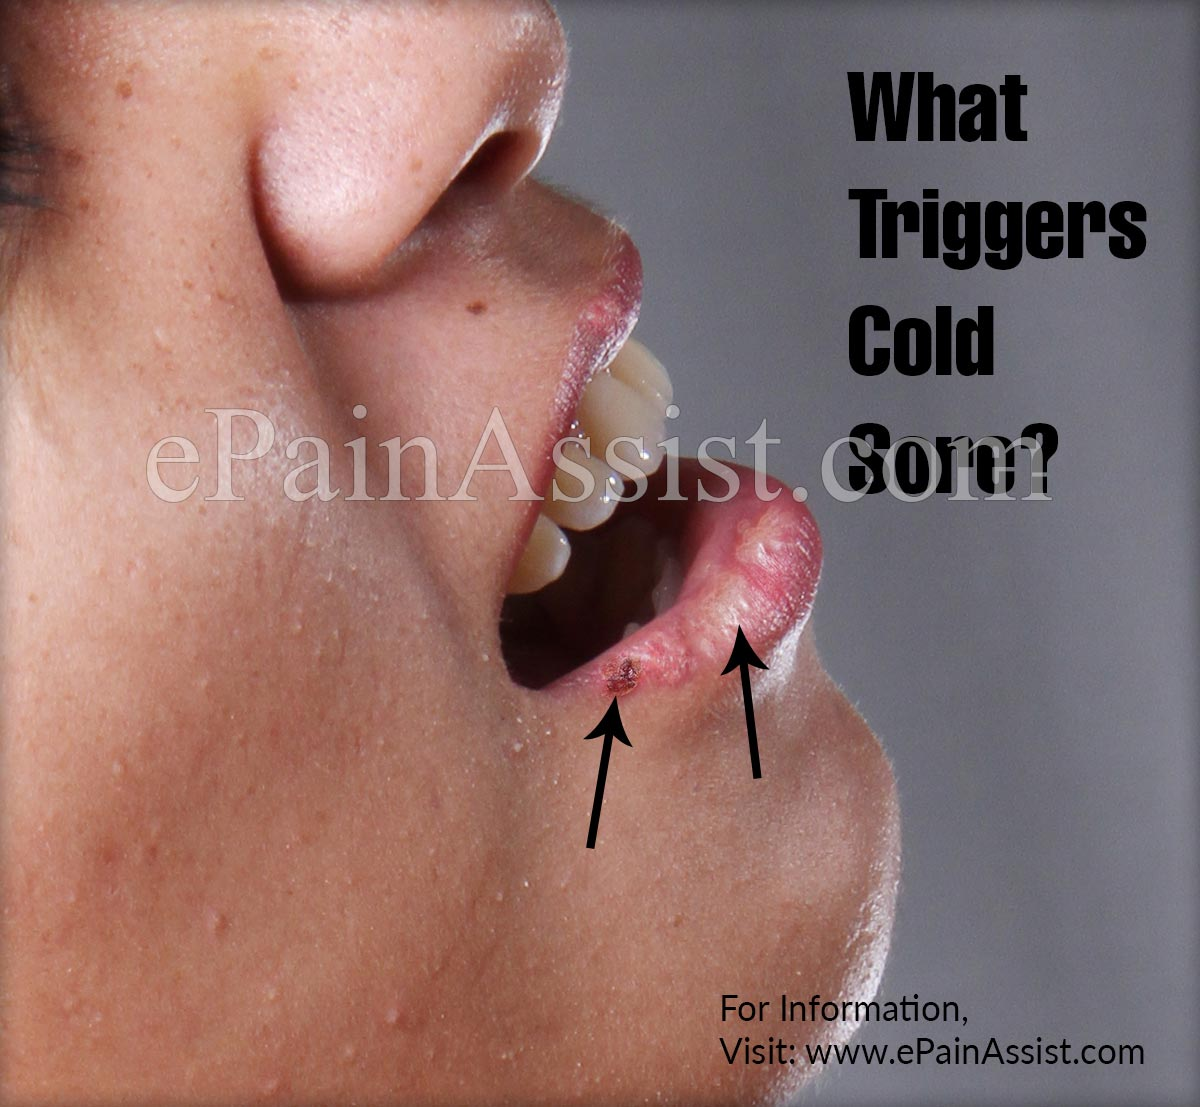 What Triggers Cold Sore?